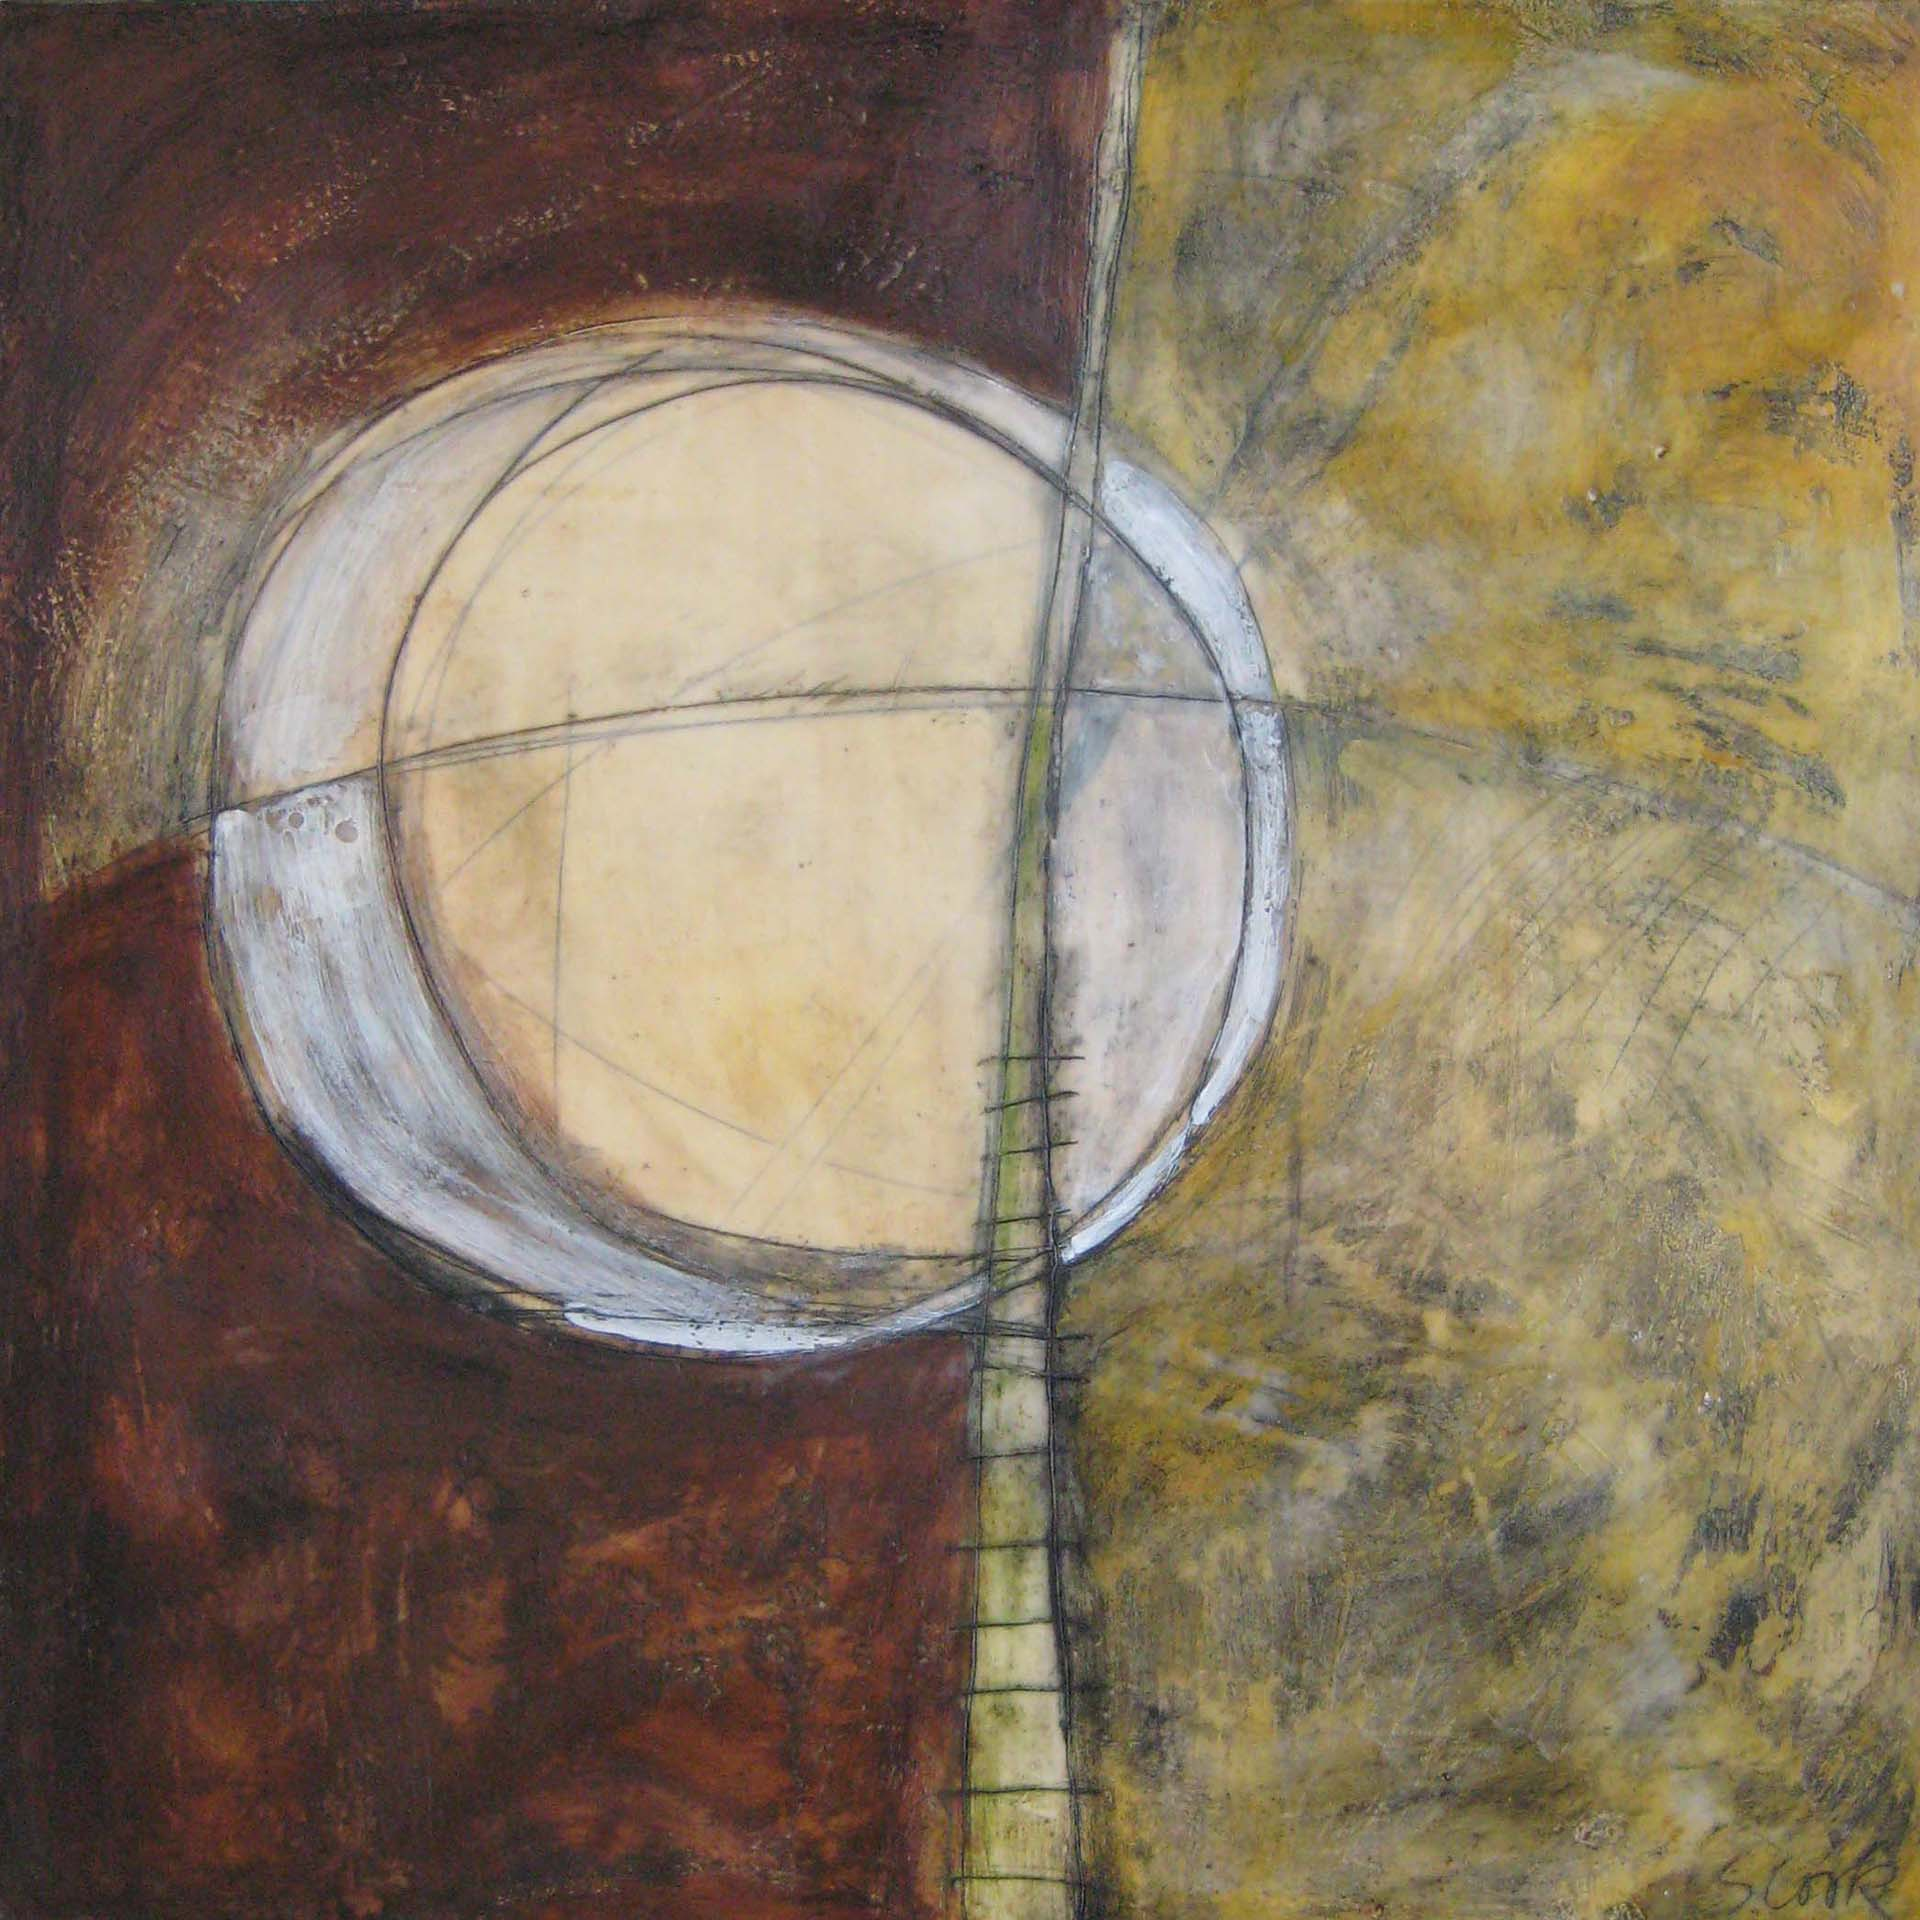 Moon with Ladder 48x48